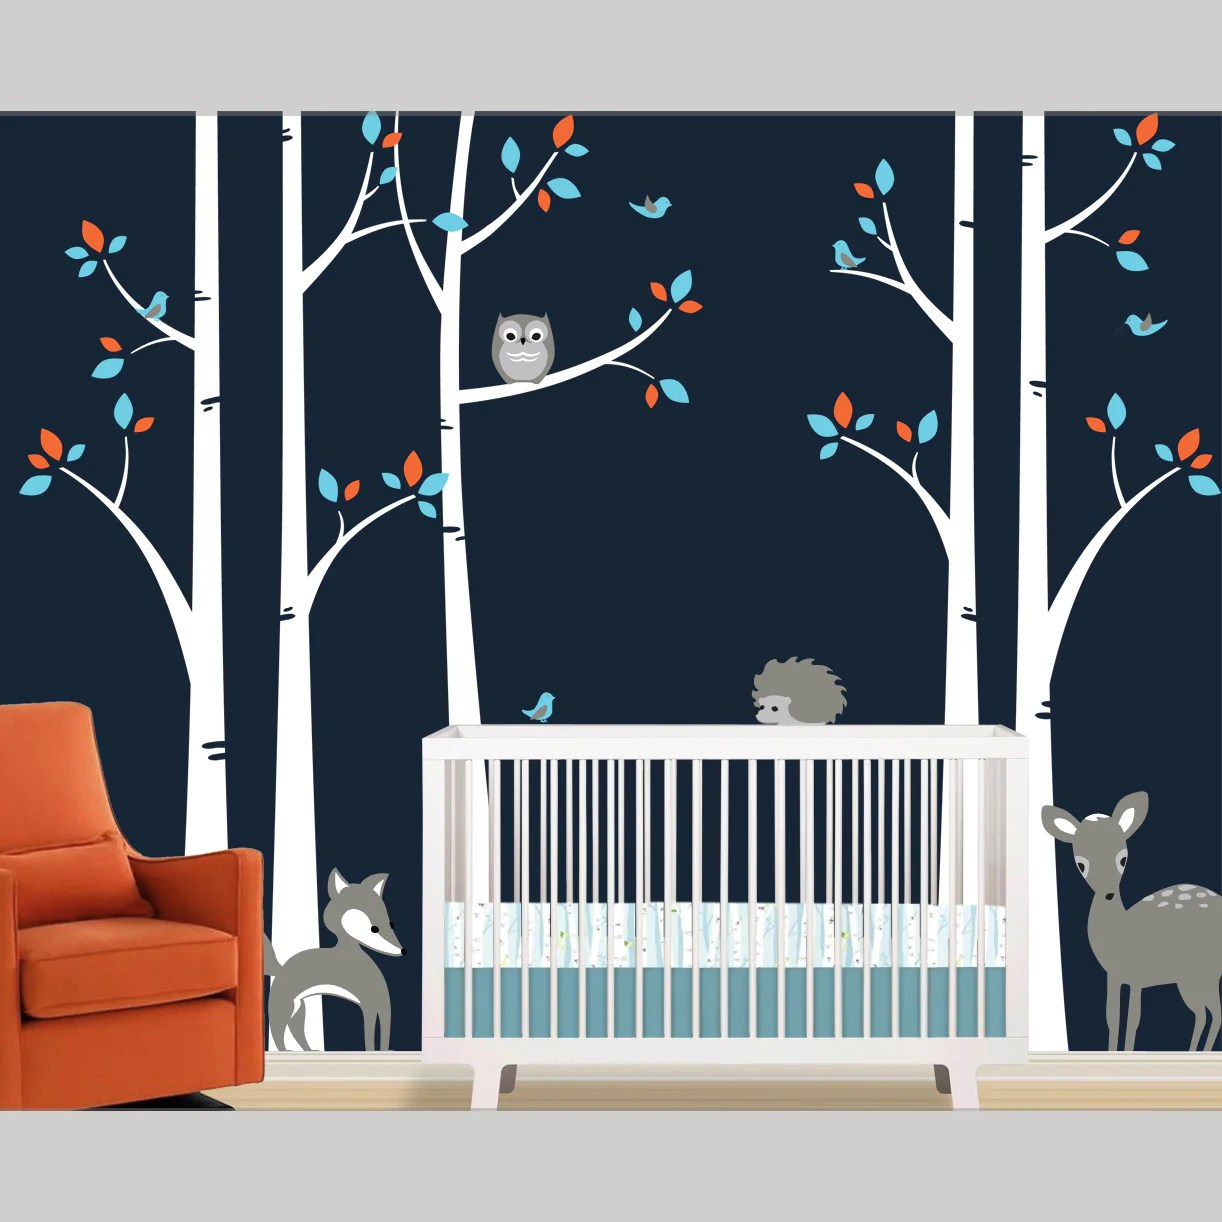 Fullsize Of Birch Tree Wall Decal